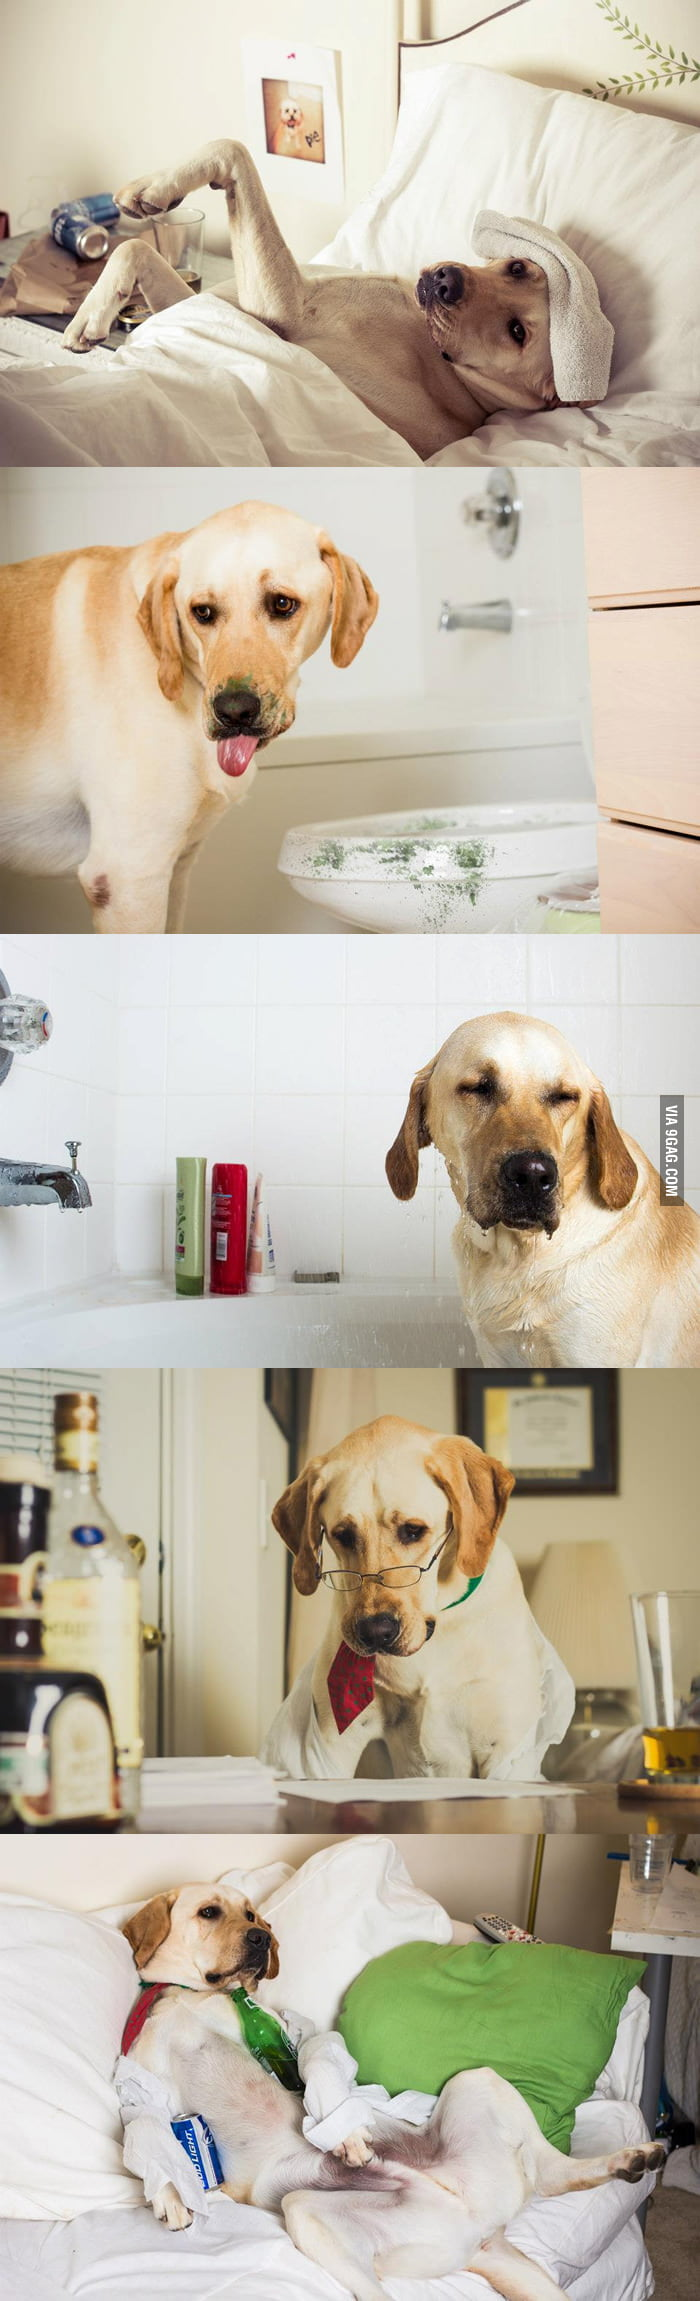 A day in the life of a dog.